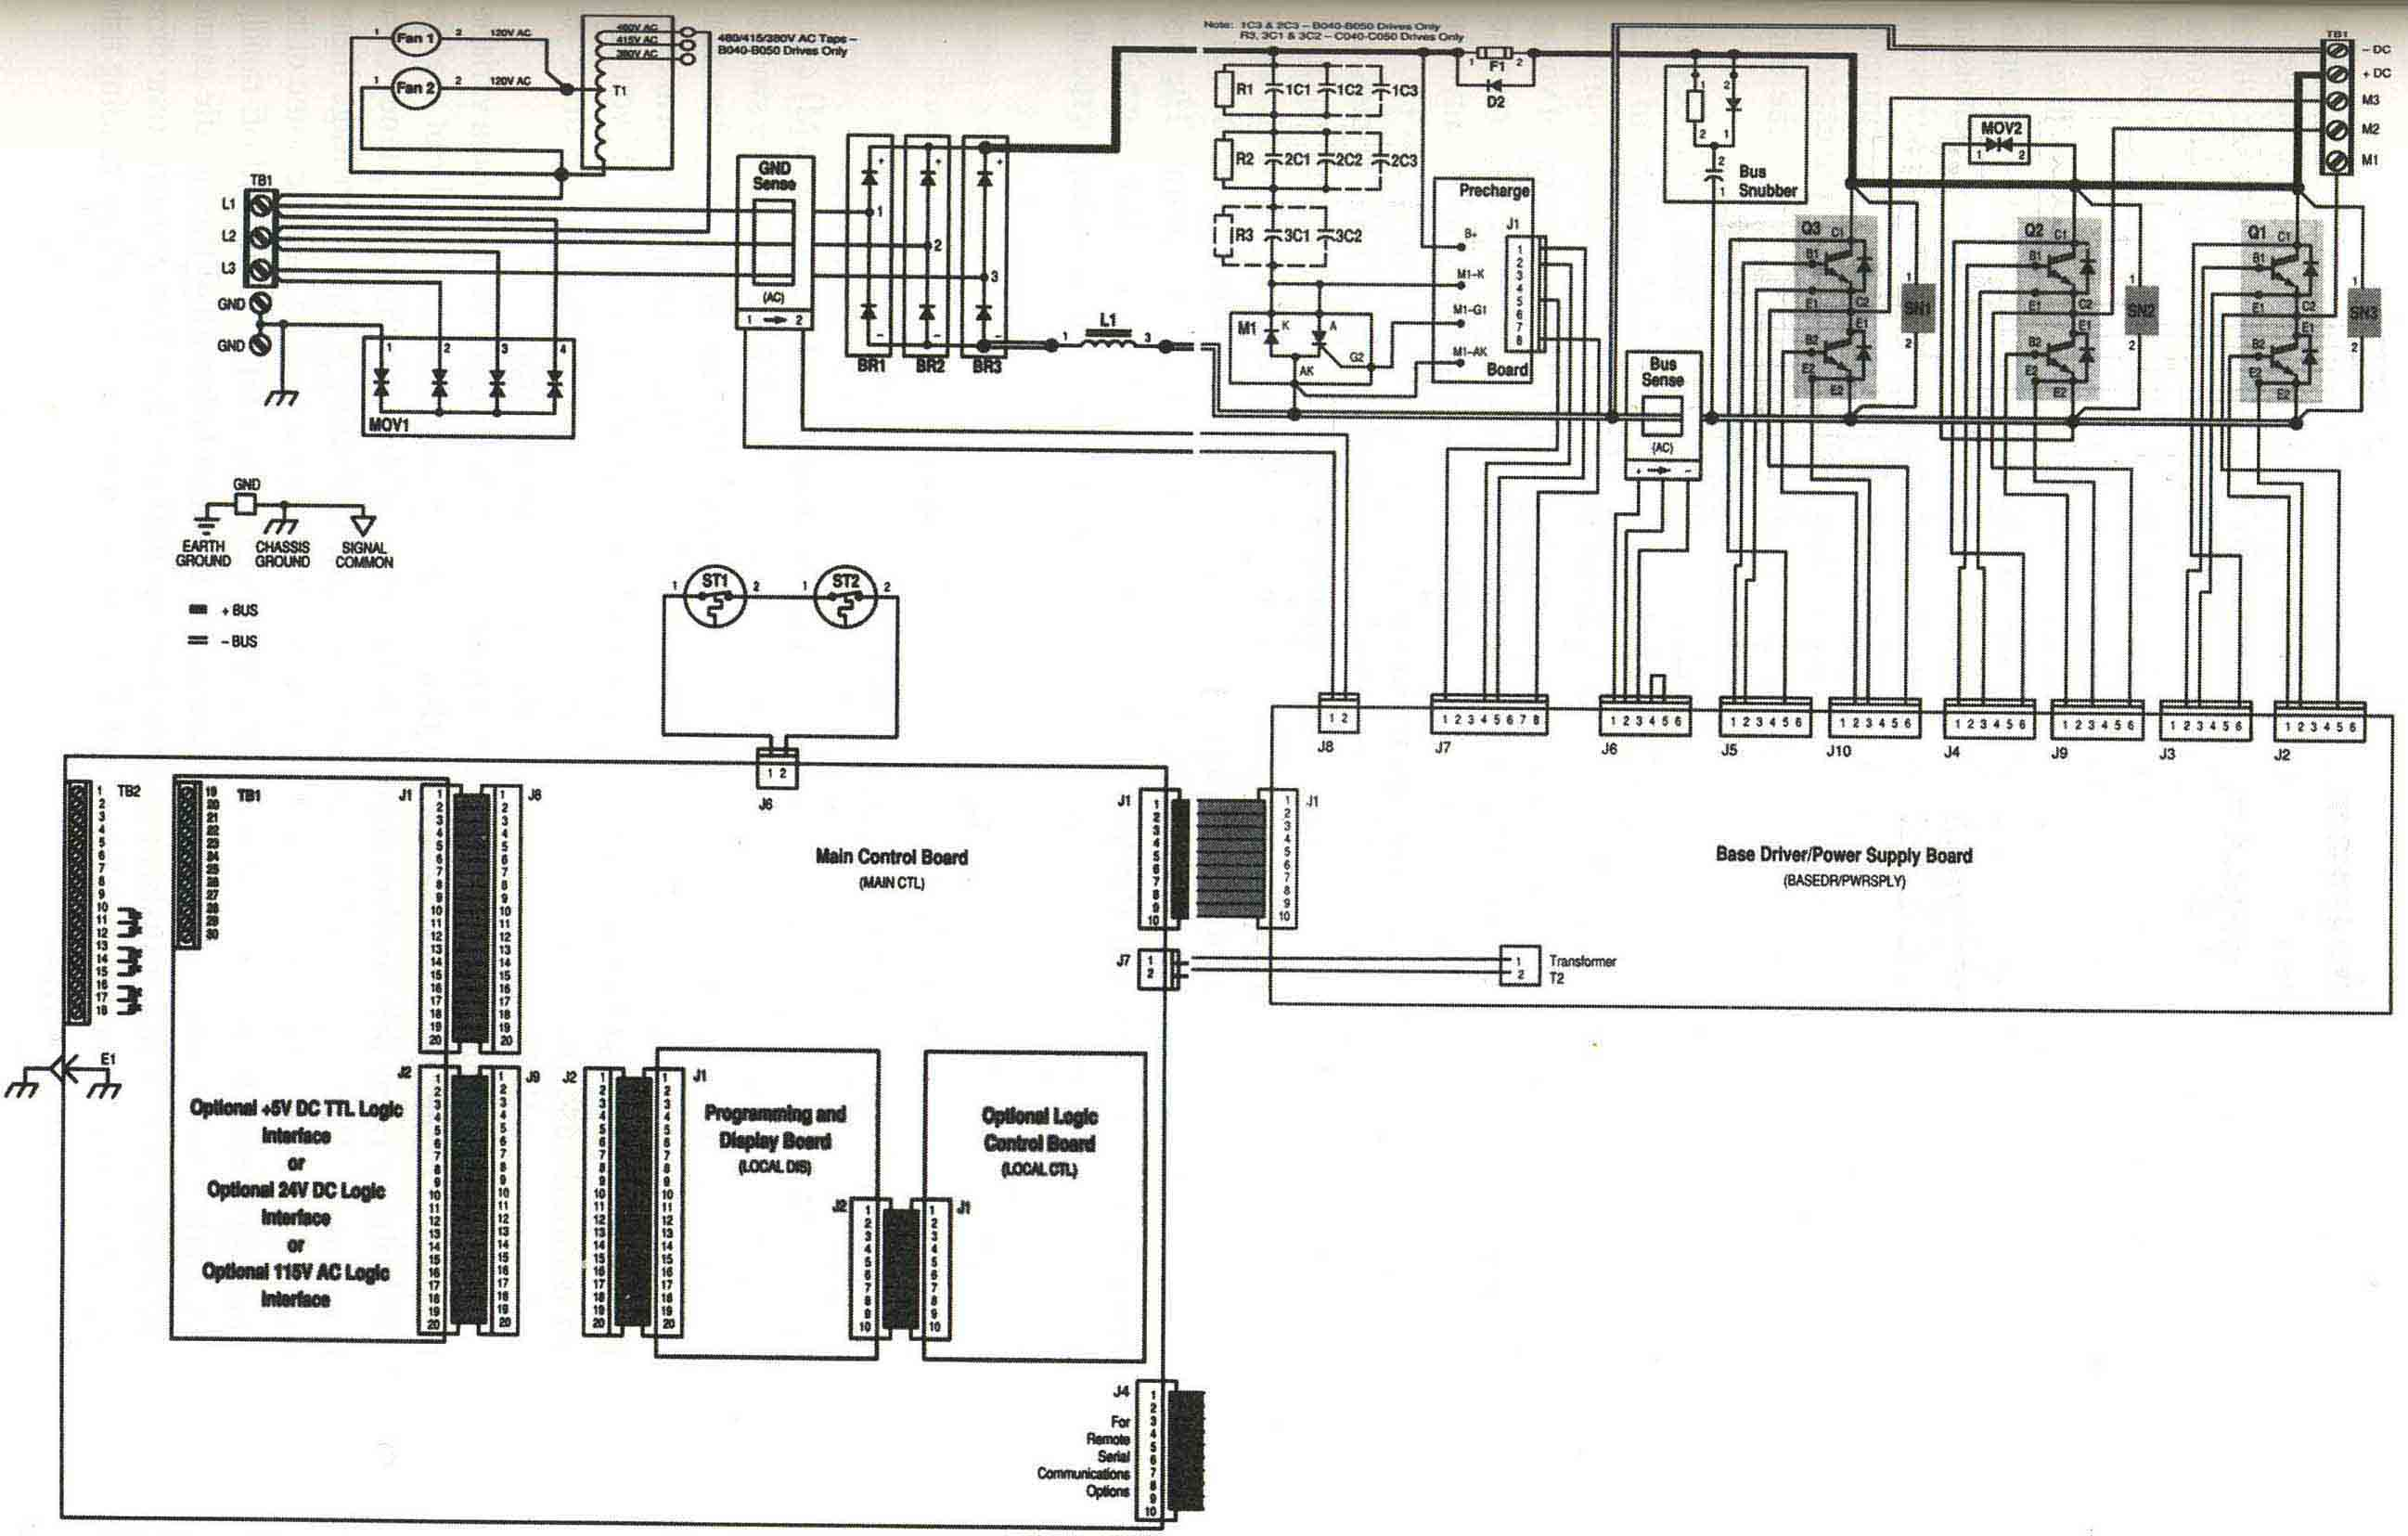 Allen Bradley 1336 schematic solid state circuits for variable frequency drives vfd control wiring diagram at bakdesigns.co